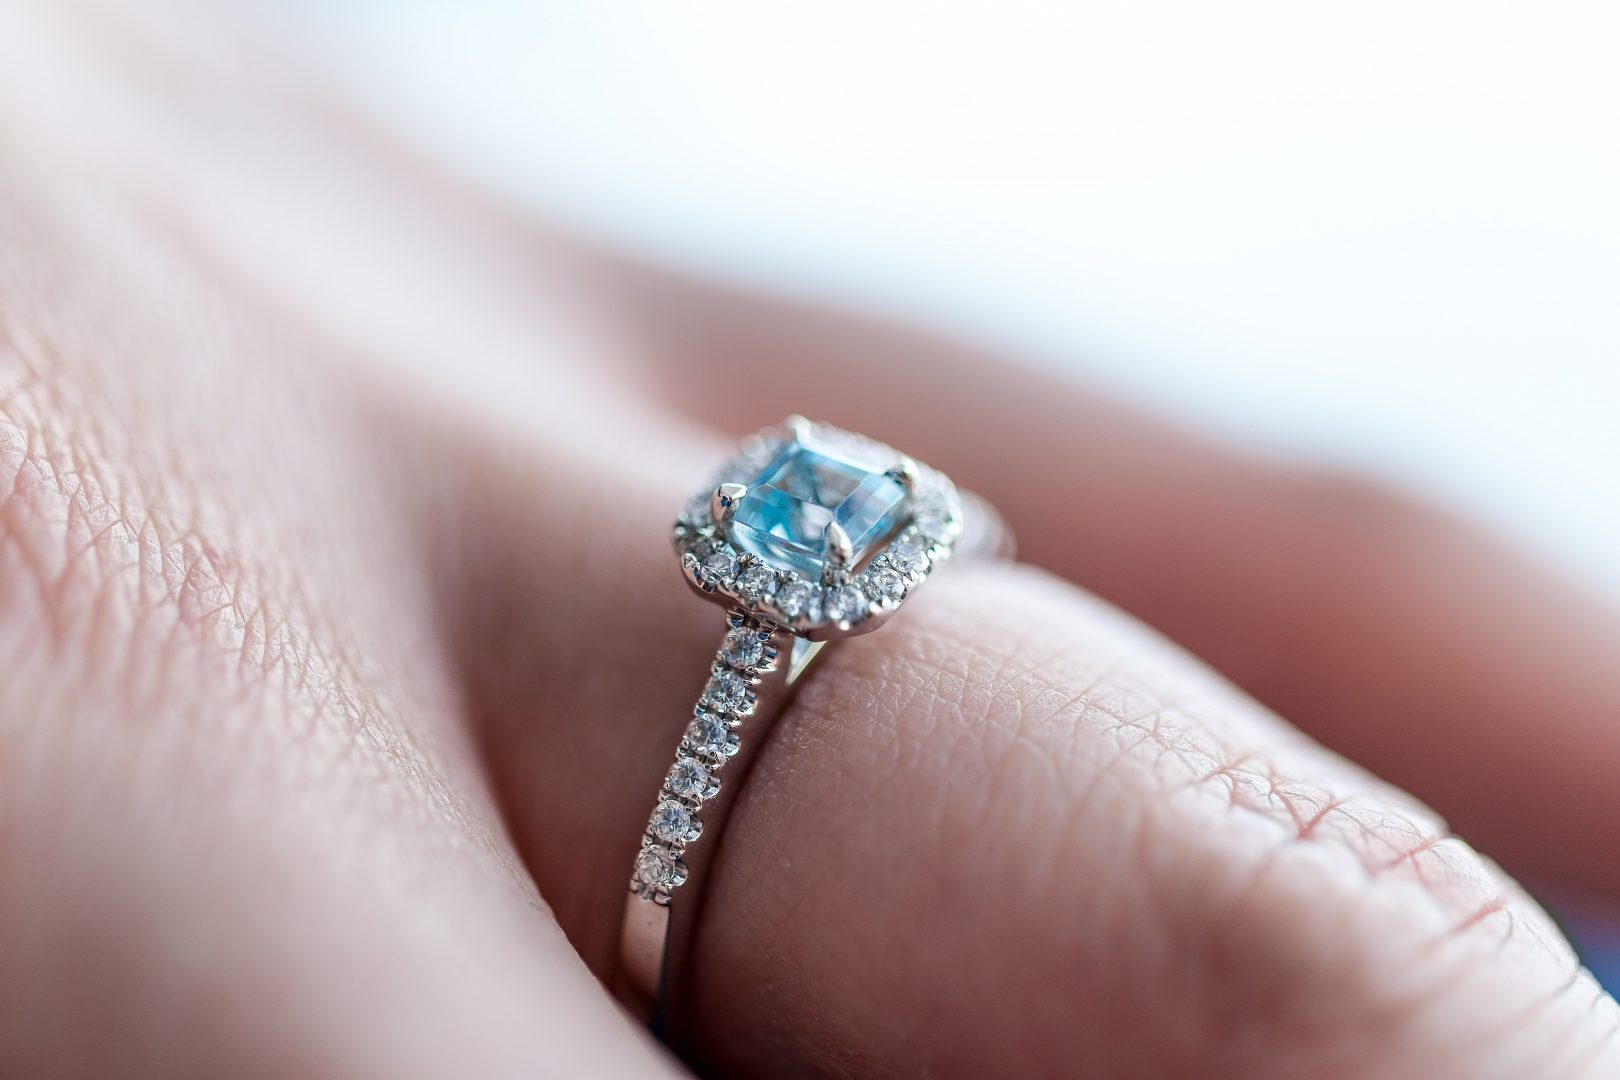 A sparkling ring